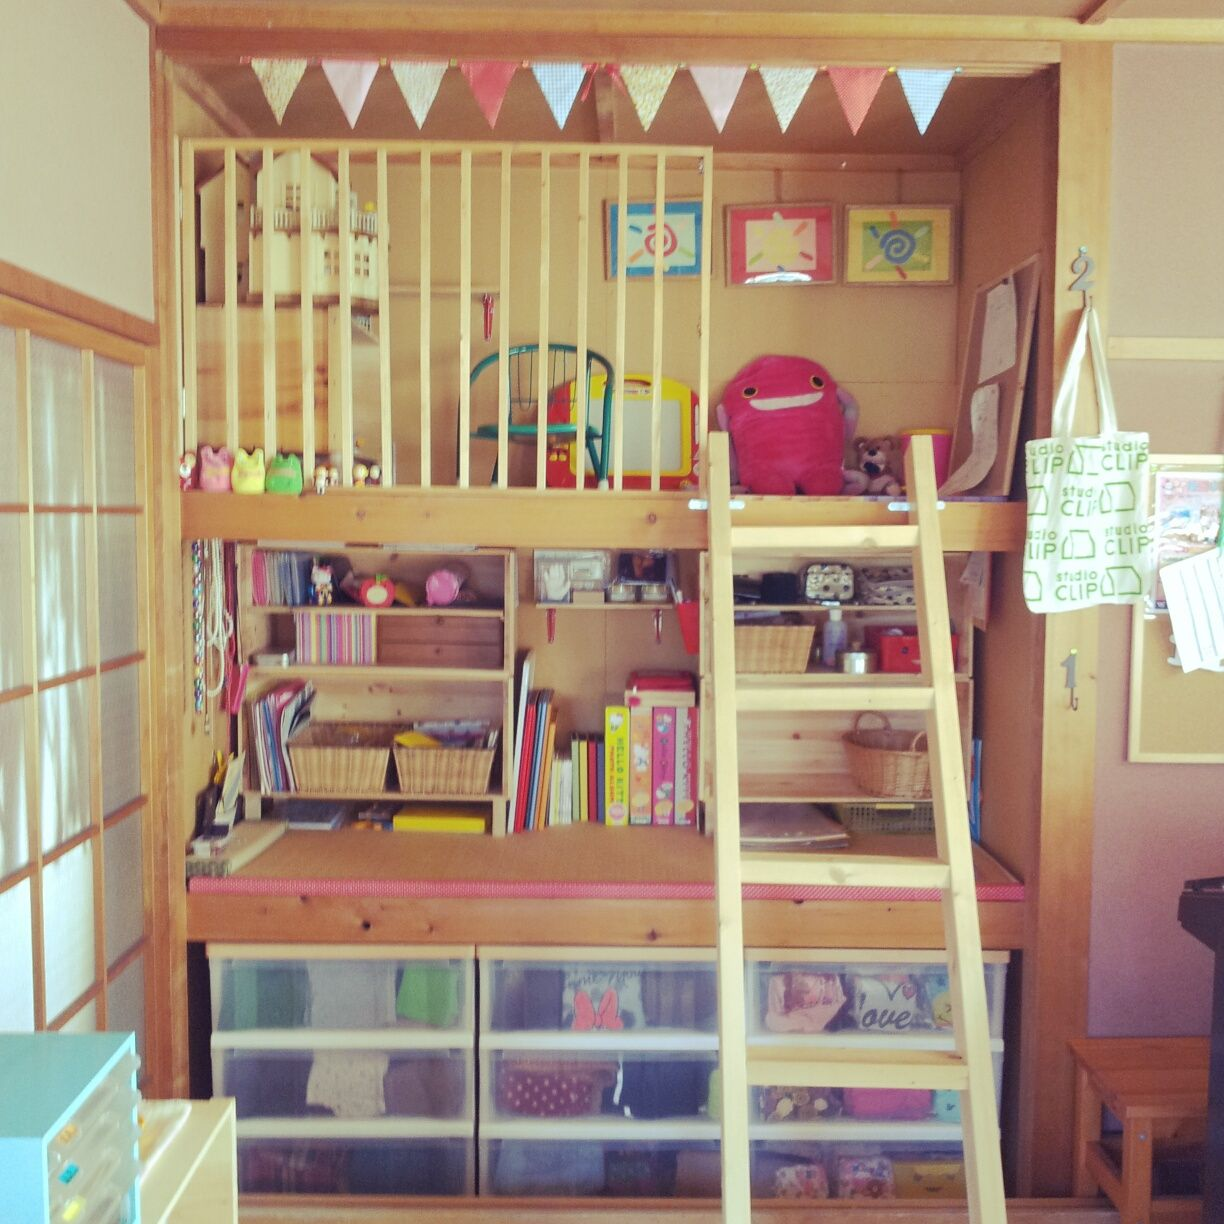 A Japanese Inspired Apartment With Plenty Storage Systems: 賃貸/押入れ子供部屋/収納/雑貨/DIY/Overview…などのインテリア実例 -2014-09-30 07:33